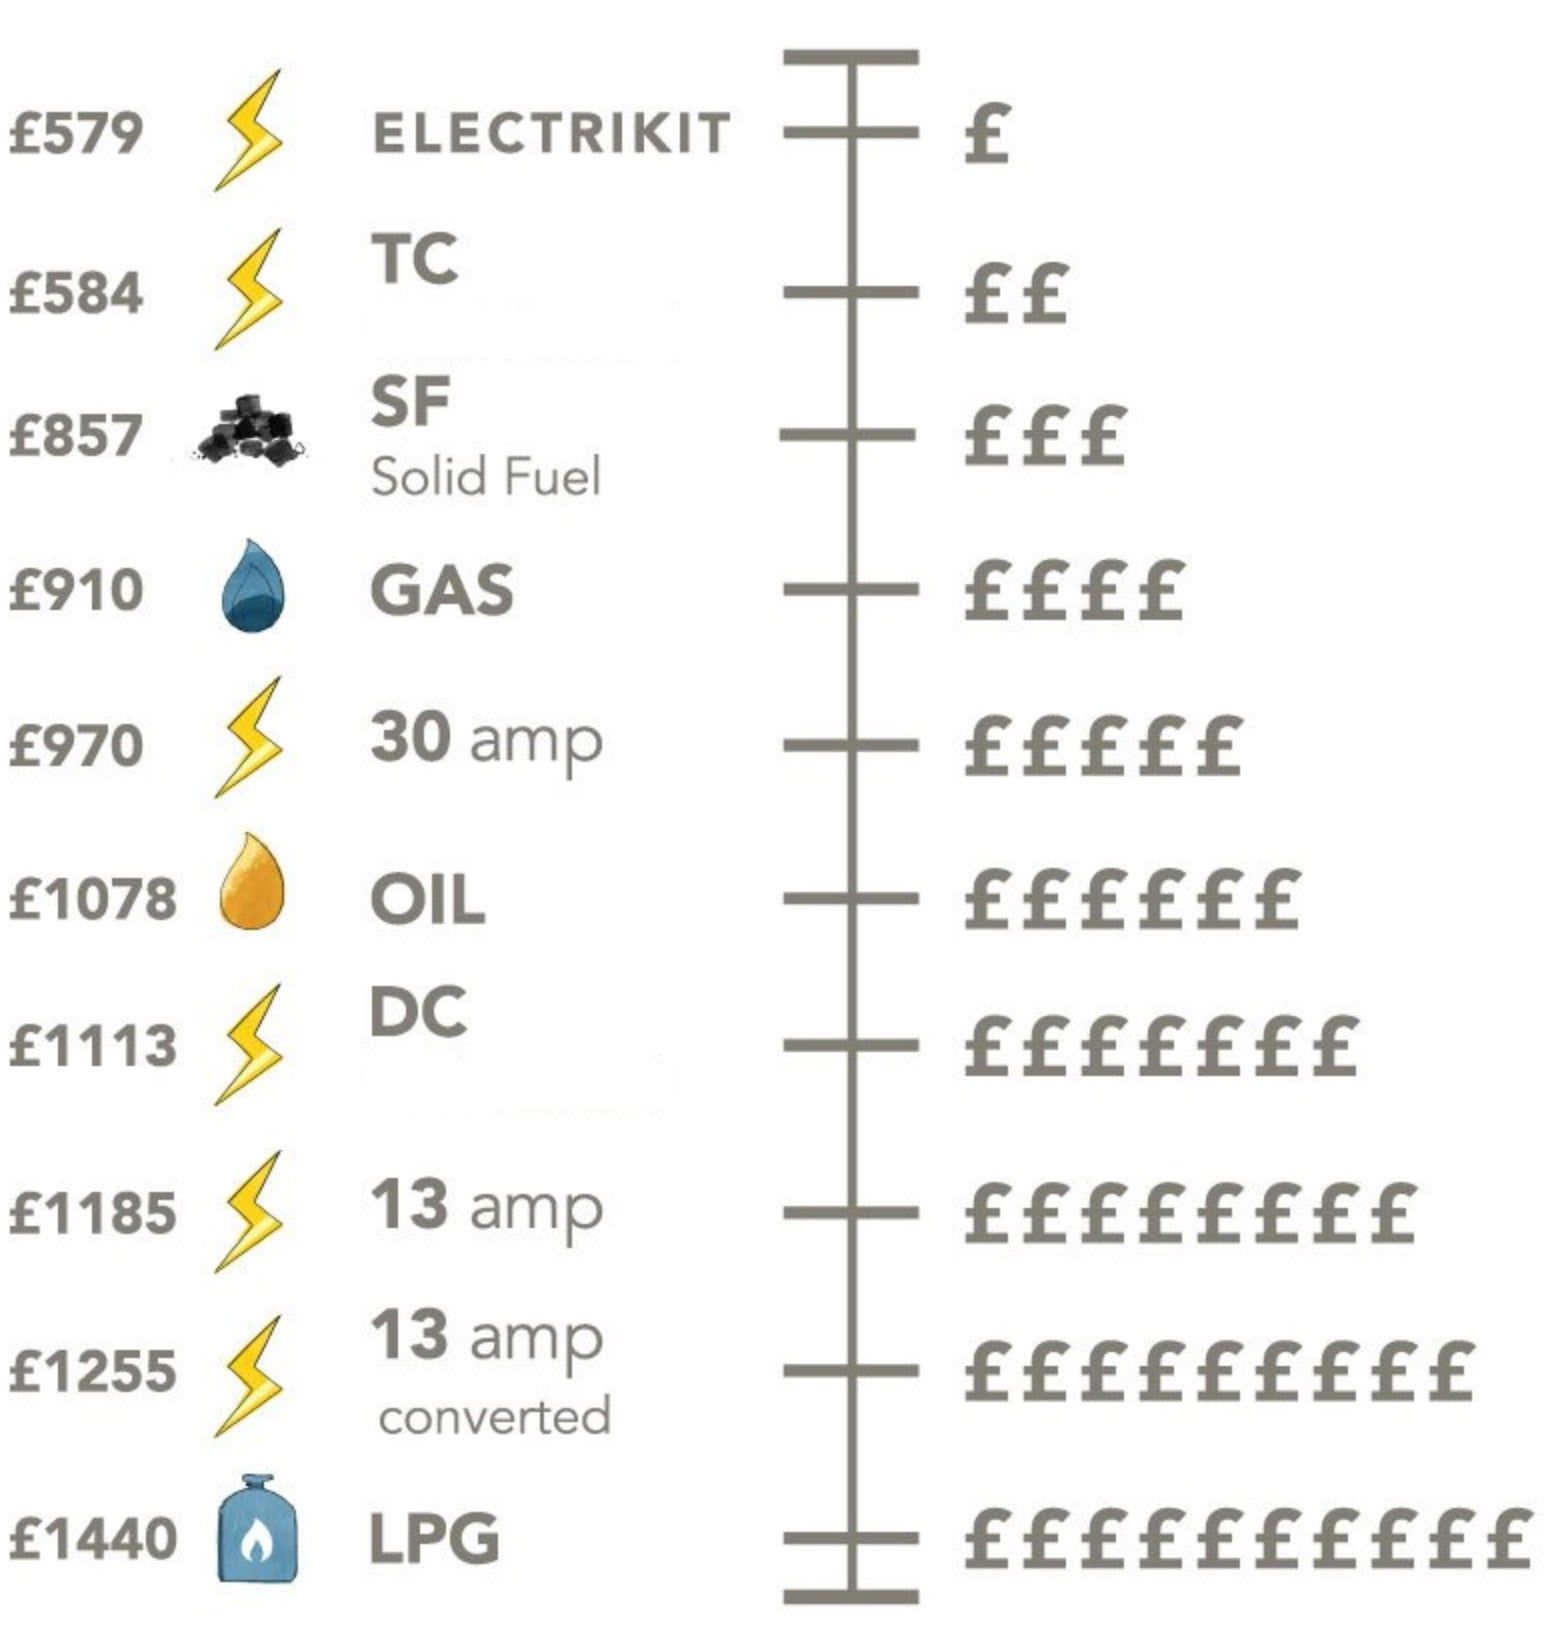 Electric Aga range cooker running costs